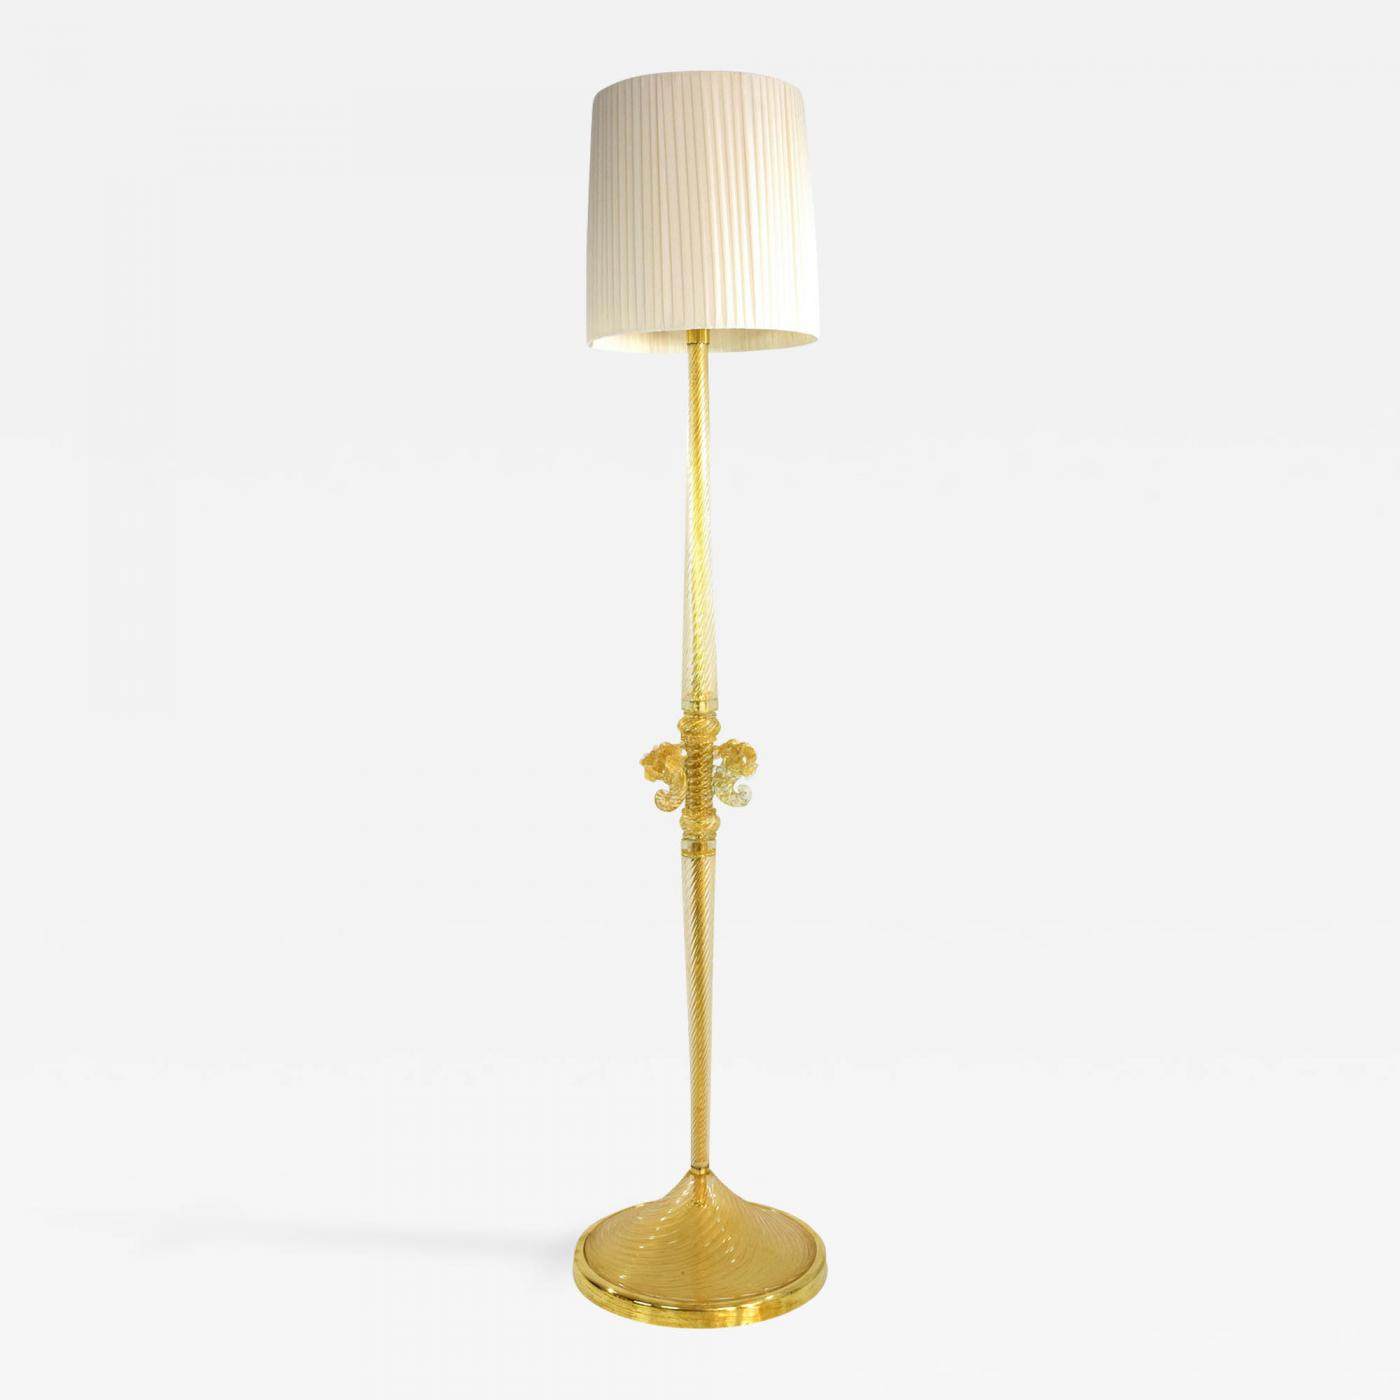 Ercole barovier mid century murano floor lamp by barovier ercole listings furniture lighting floor lamps aloadofball Gallery